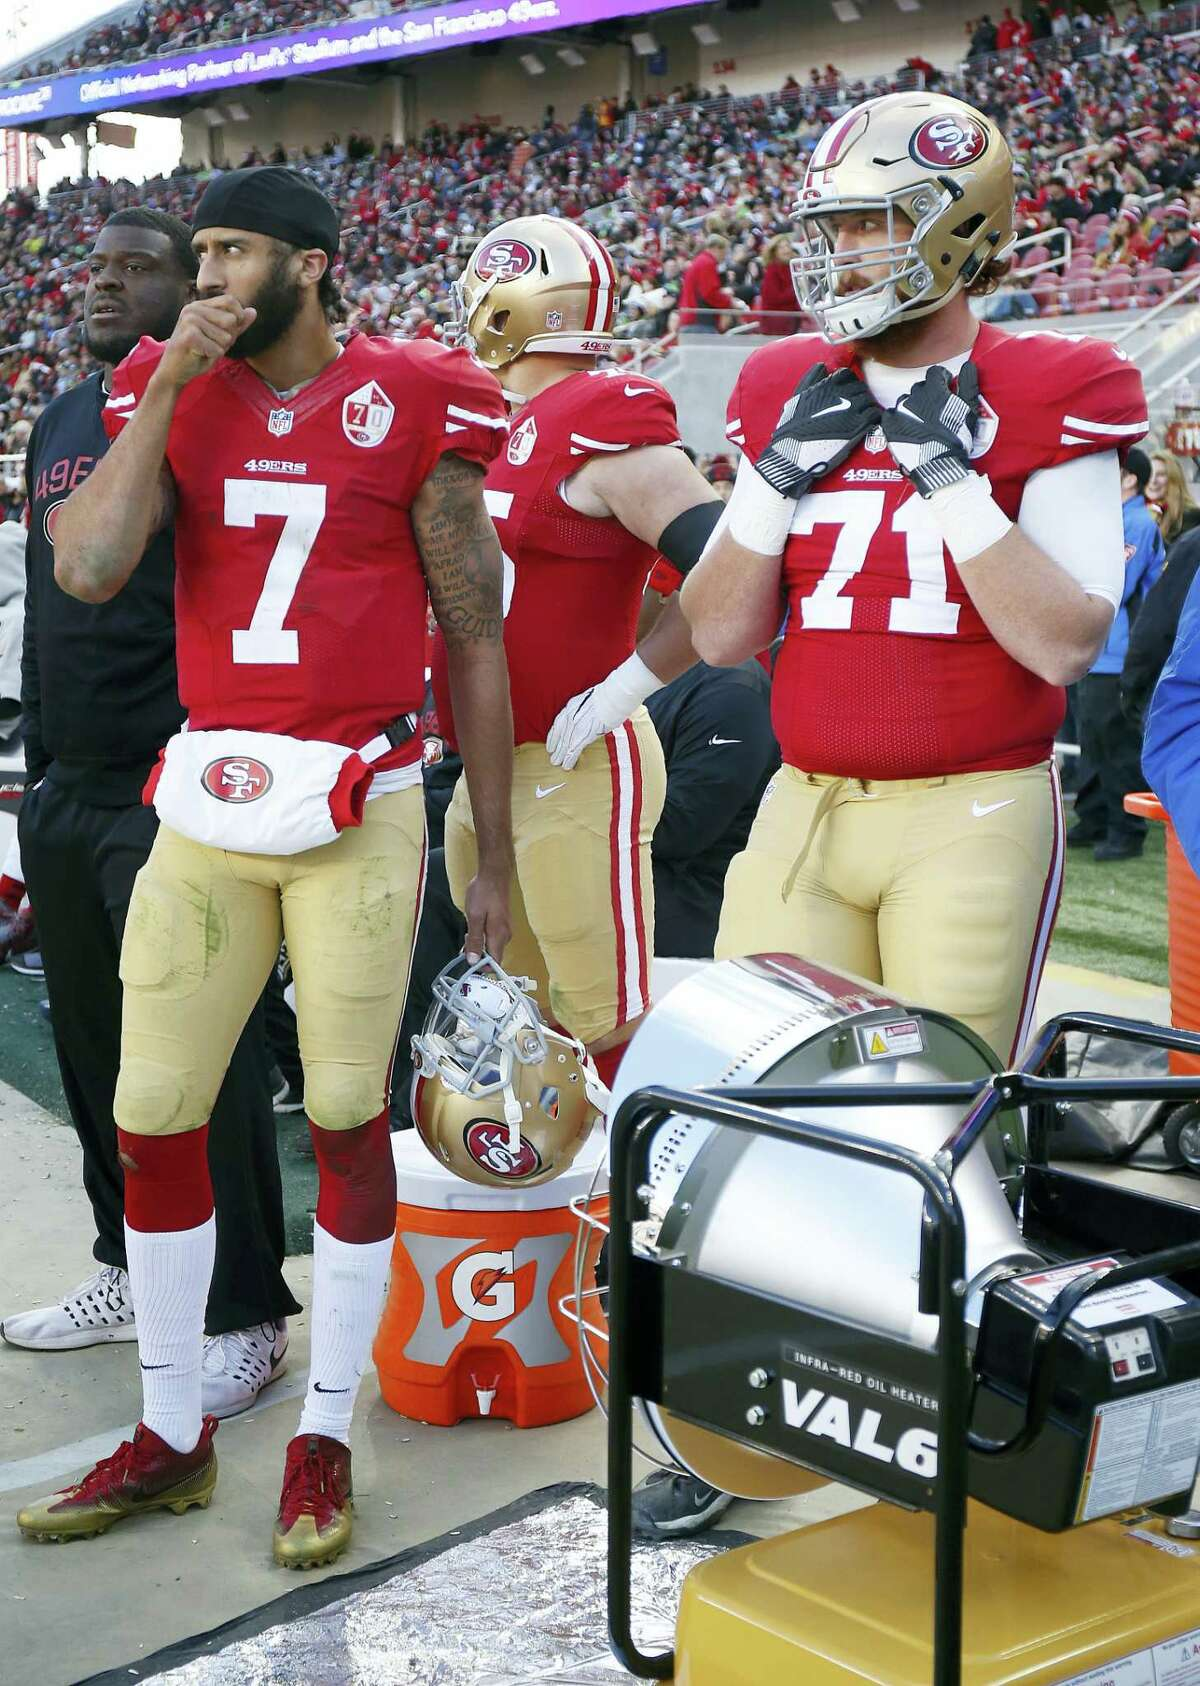 San Francisco 49ers quarterback Colin Kaepernick (7) and offensive tackle John Theus (71) stand on the sideline during the second half of an NFL football game against the Seattle Seahawks in Santa Clara, Calif. on Jan. 1, 2017.